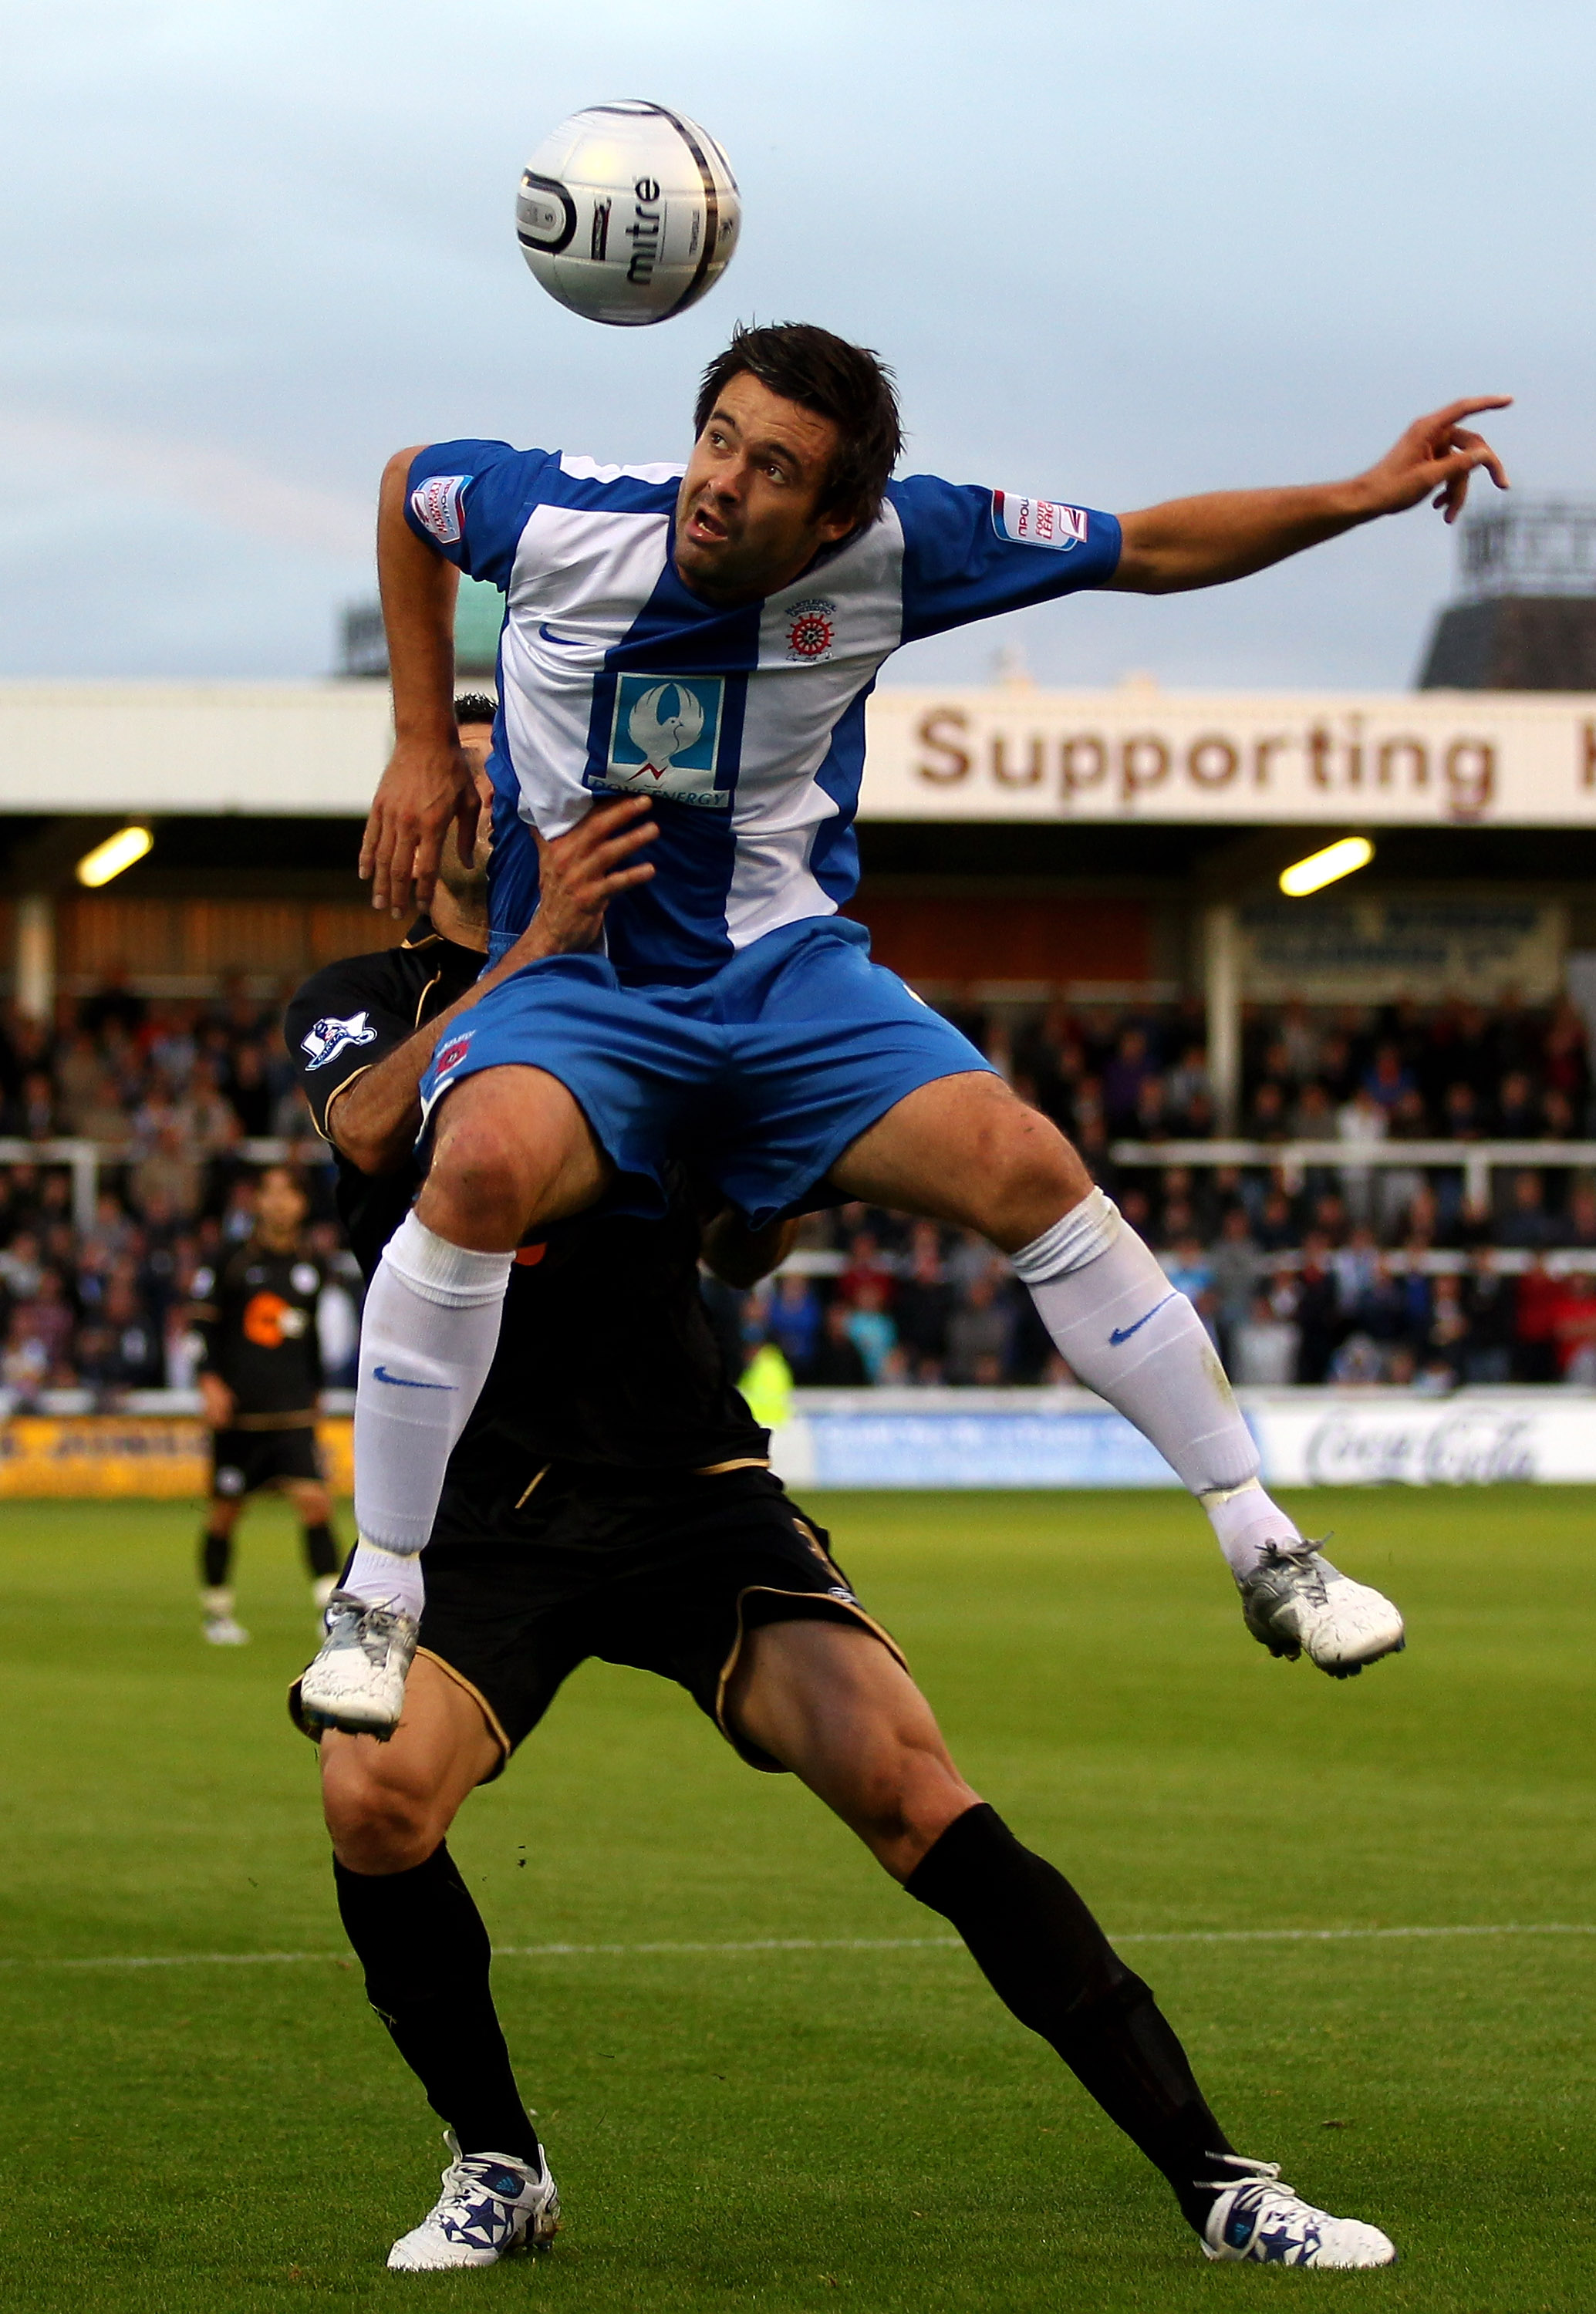 HARTLEPOOL, ENGLAND - AUGUST 24:  Adam Boyd of Hartlepool United rises above Antolin Alcaraz of Wigan Athletic during the Carling Cup second round match between Hartlepool United and Wigan Athletic at Victoria Park on August 24, 2010 in Hartlepool, Englan